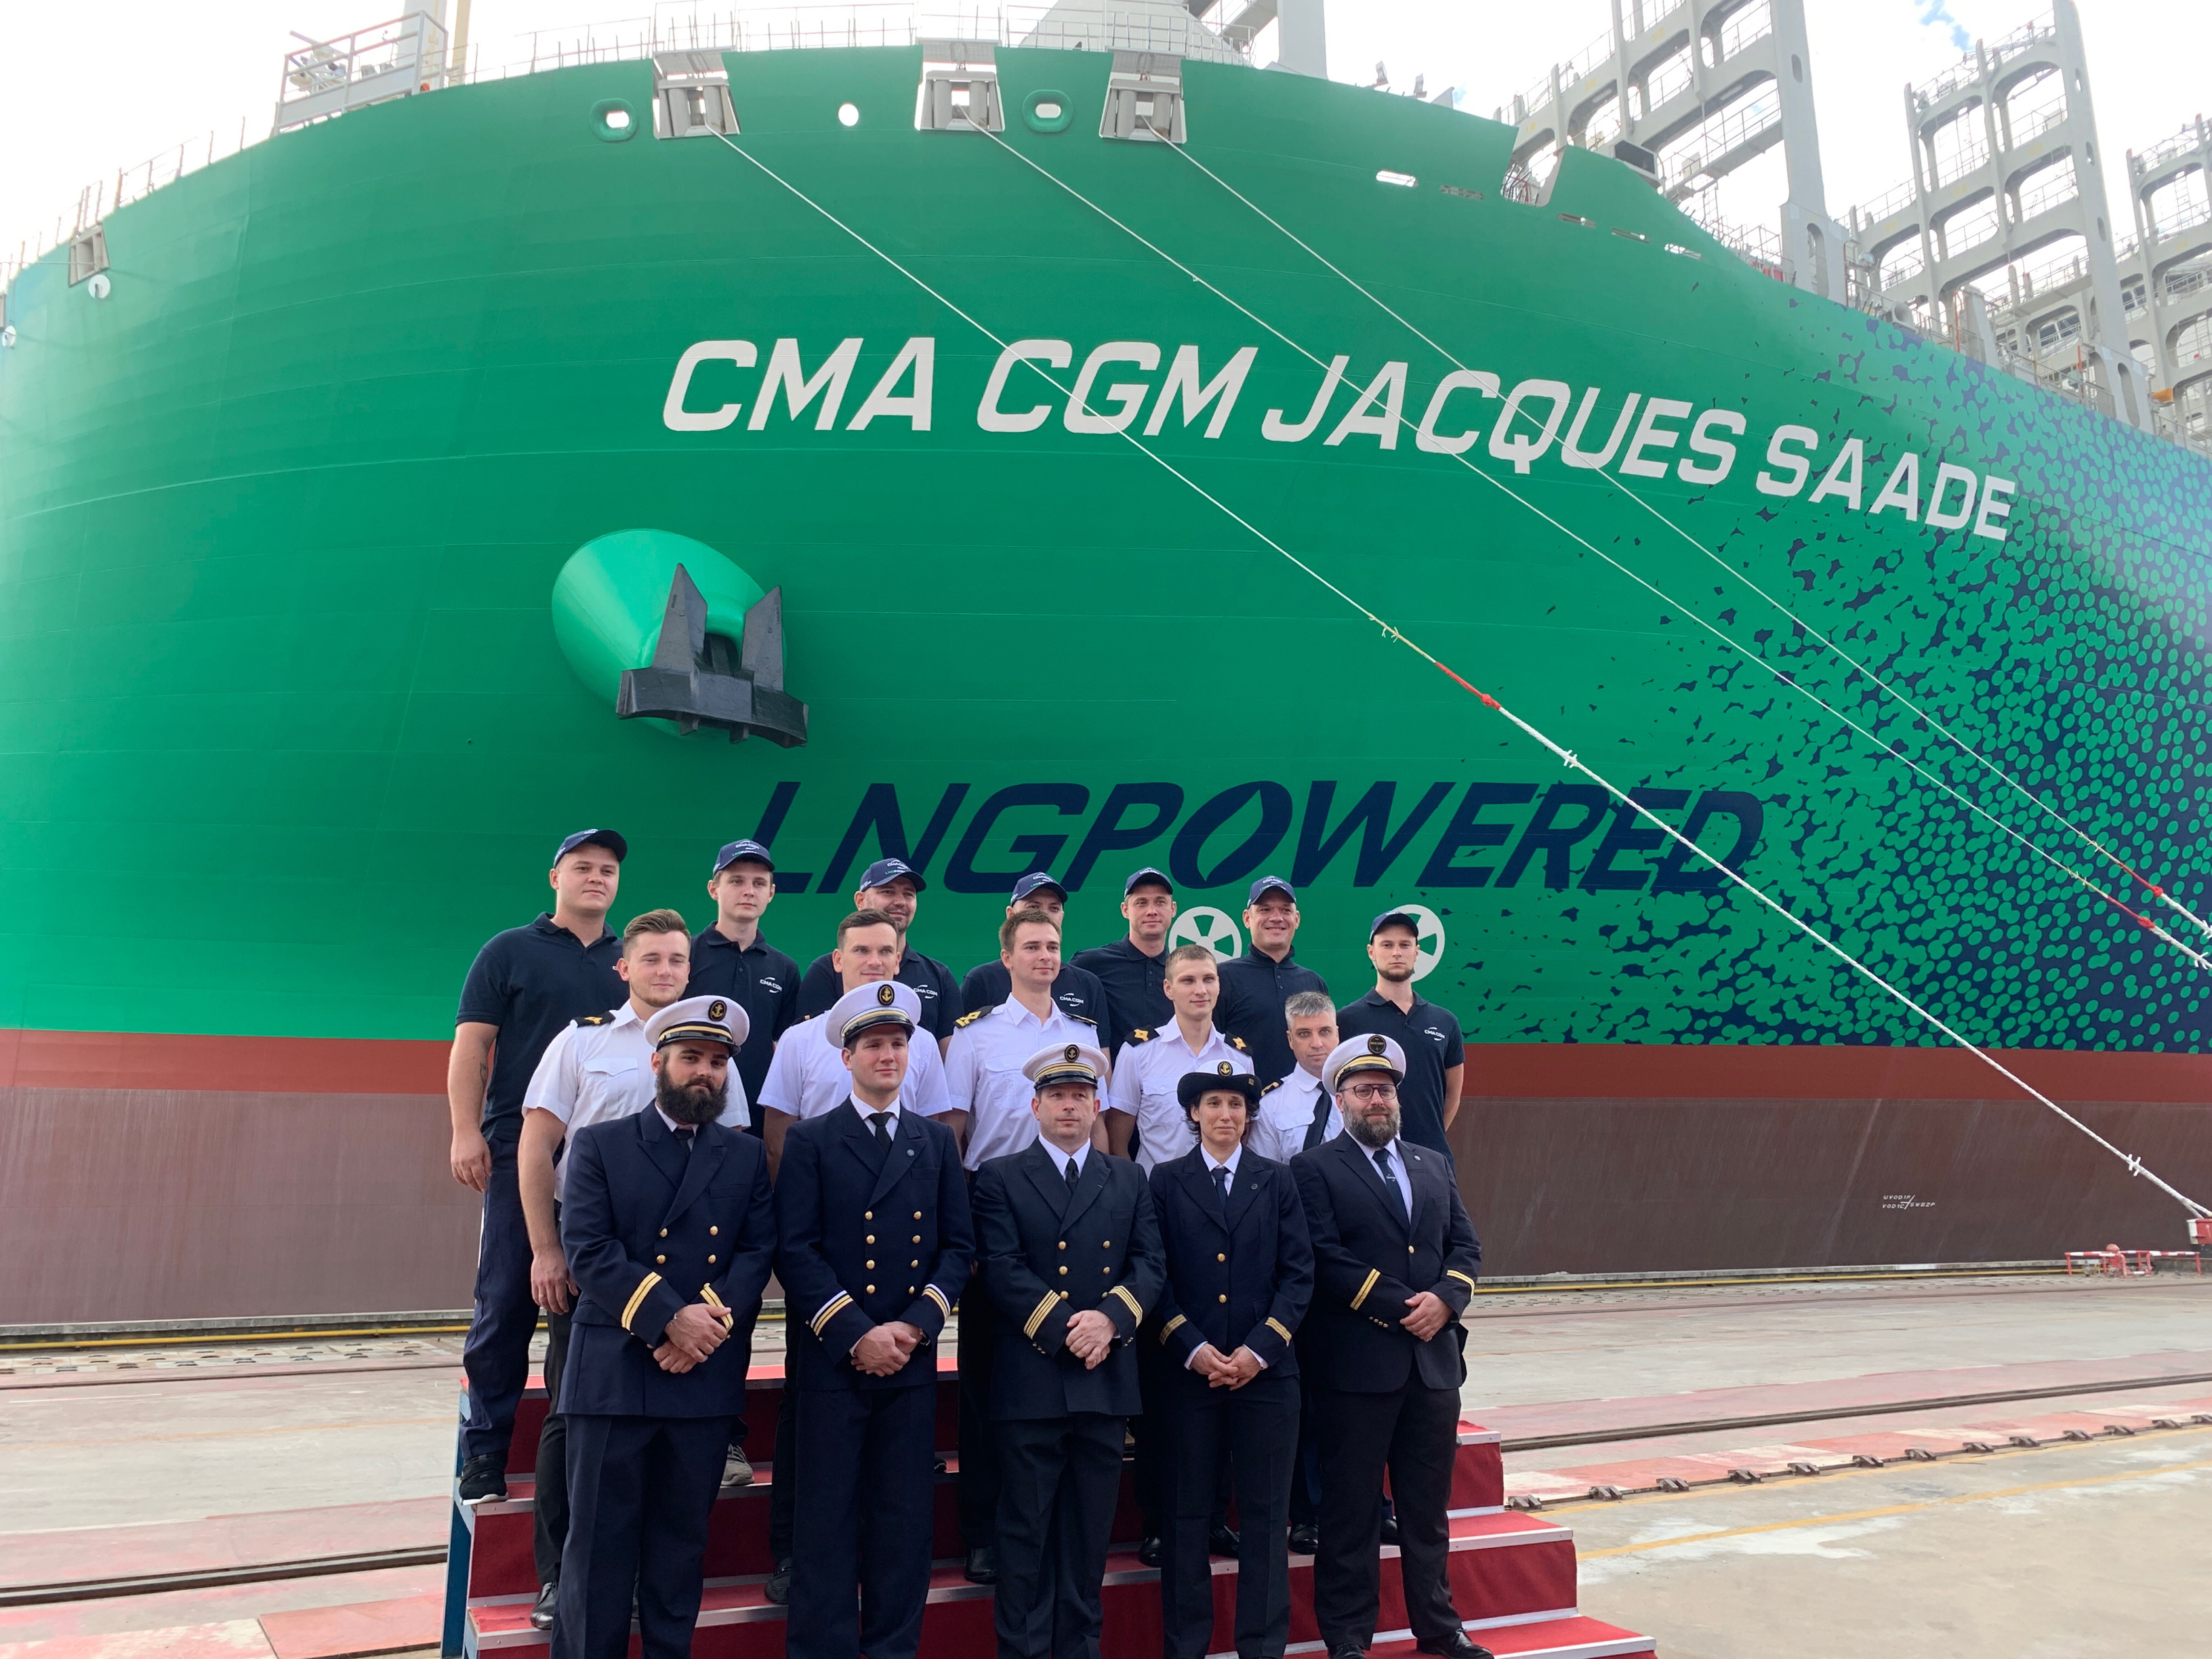 Equipage CMA CGM JACQUES SAADE LNG